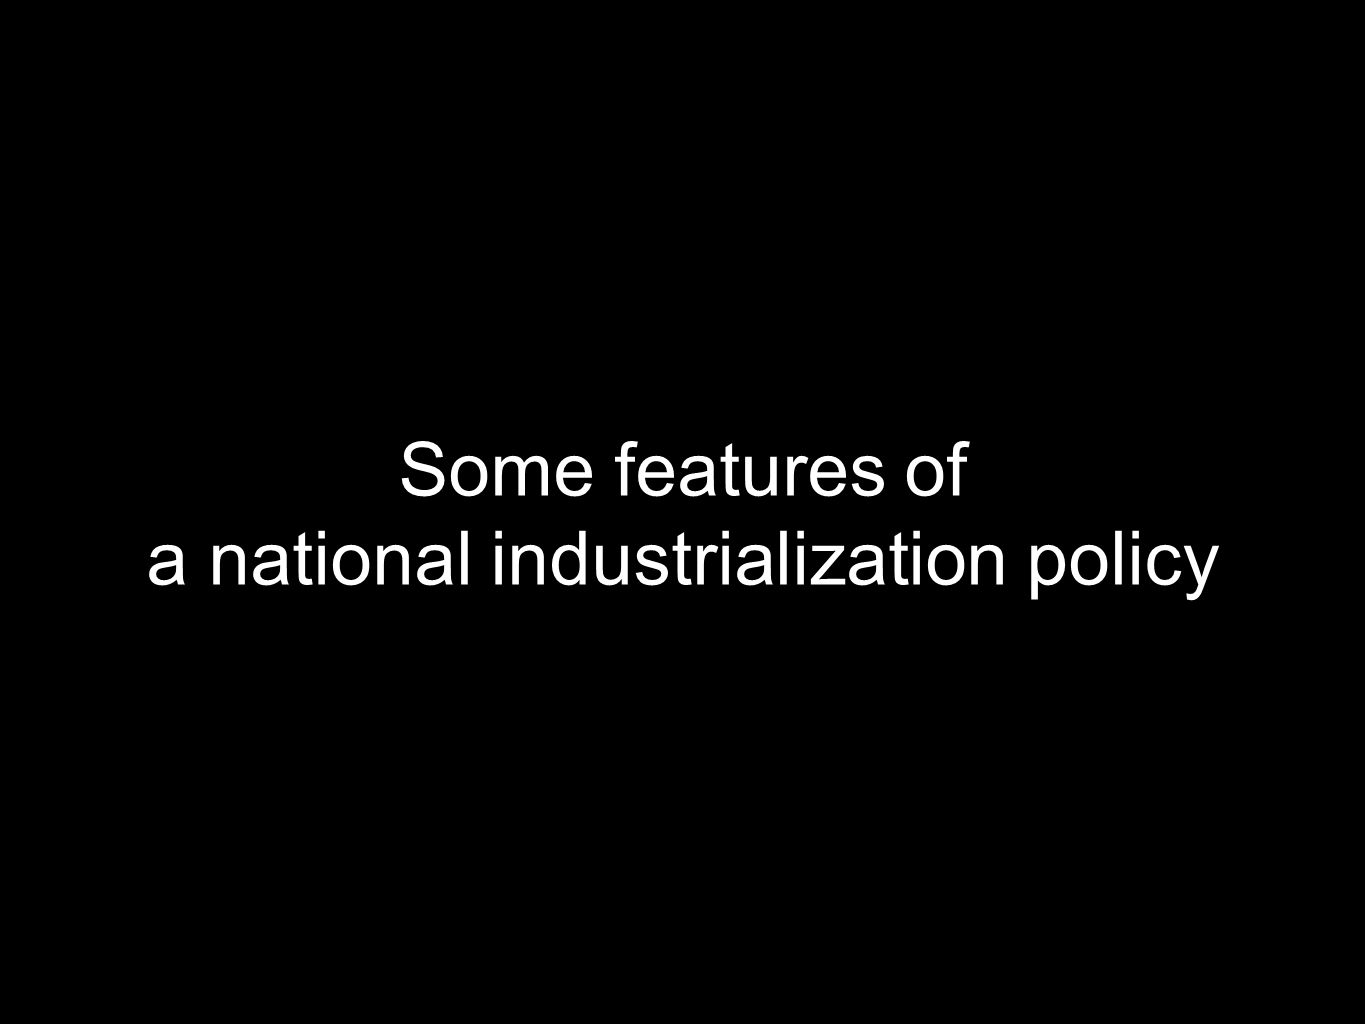 Some features of a national industrialization policy